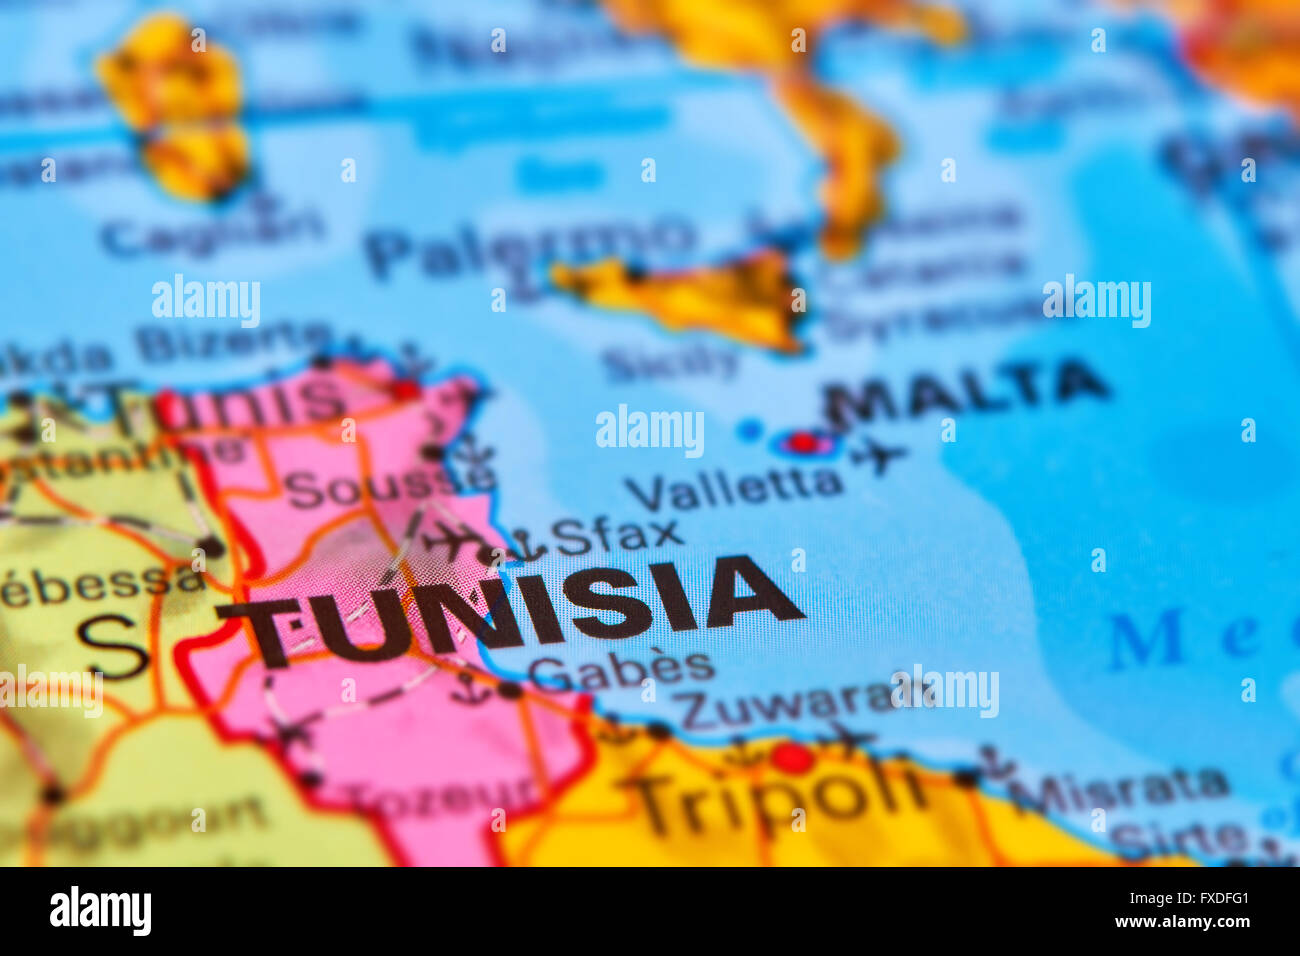 Image of: Tunisia Country In Africa On The World Map Stock Photo Alamy